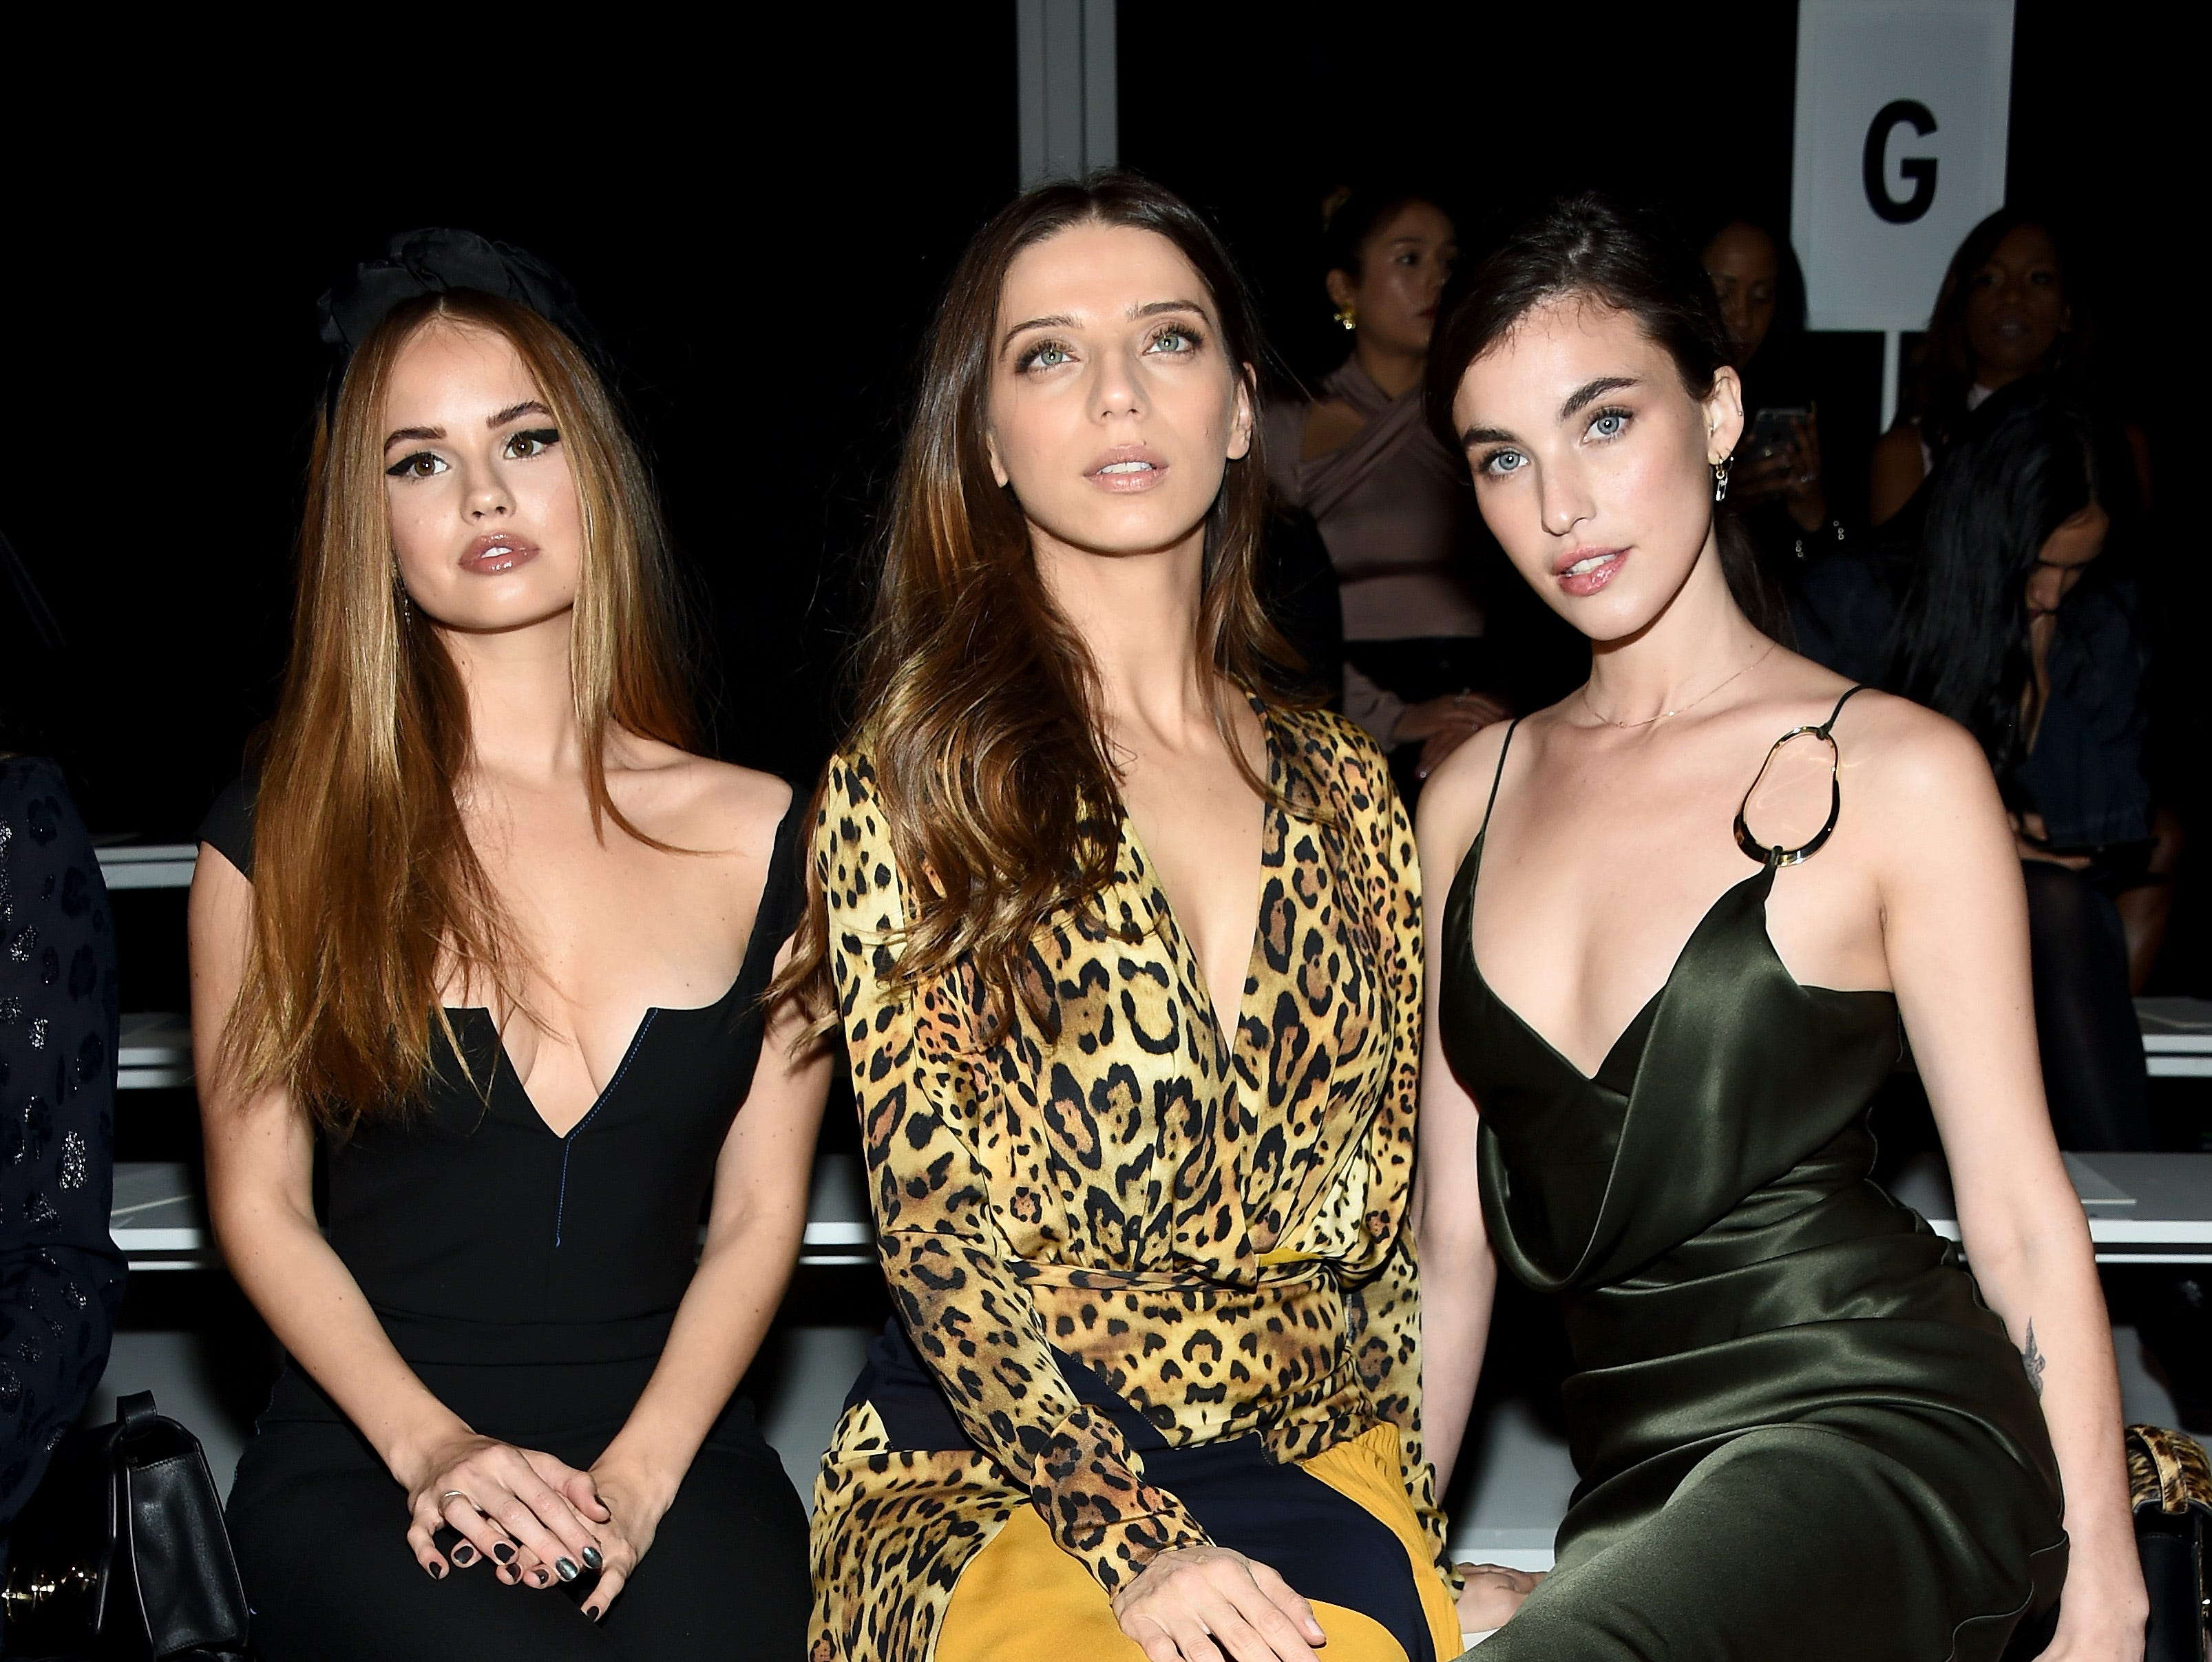 NEW YORK, NY - FEBRUARY 08:  Debby Ryan, Angela Sarafyan and Rainey Qualley attend the Cushnie front row during New York Fashion Week: The Shows at Gallery I at Spring Studios on February 8, 2019 in New York City.  (Photo by Dimitrios Kambouris/Getty Images for NYFW: The Shows) ORG XMIT: 775291341 ORIG FILE ID: 1095775310